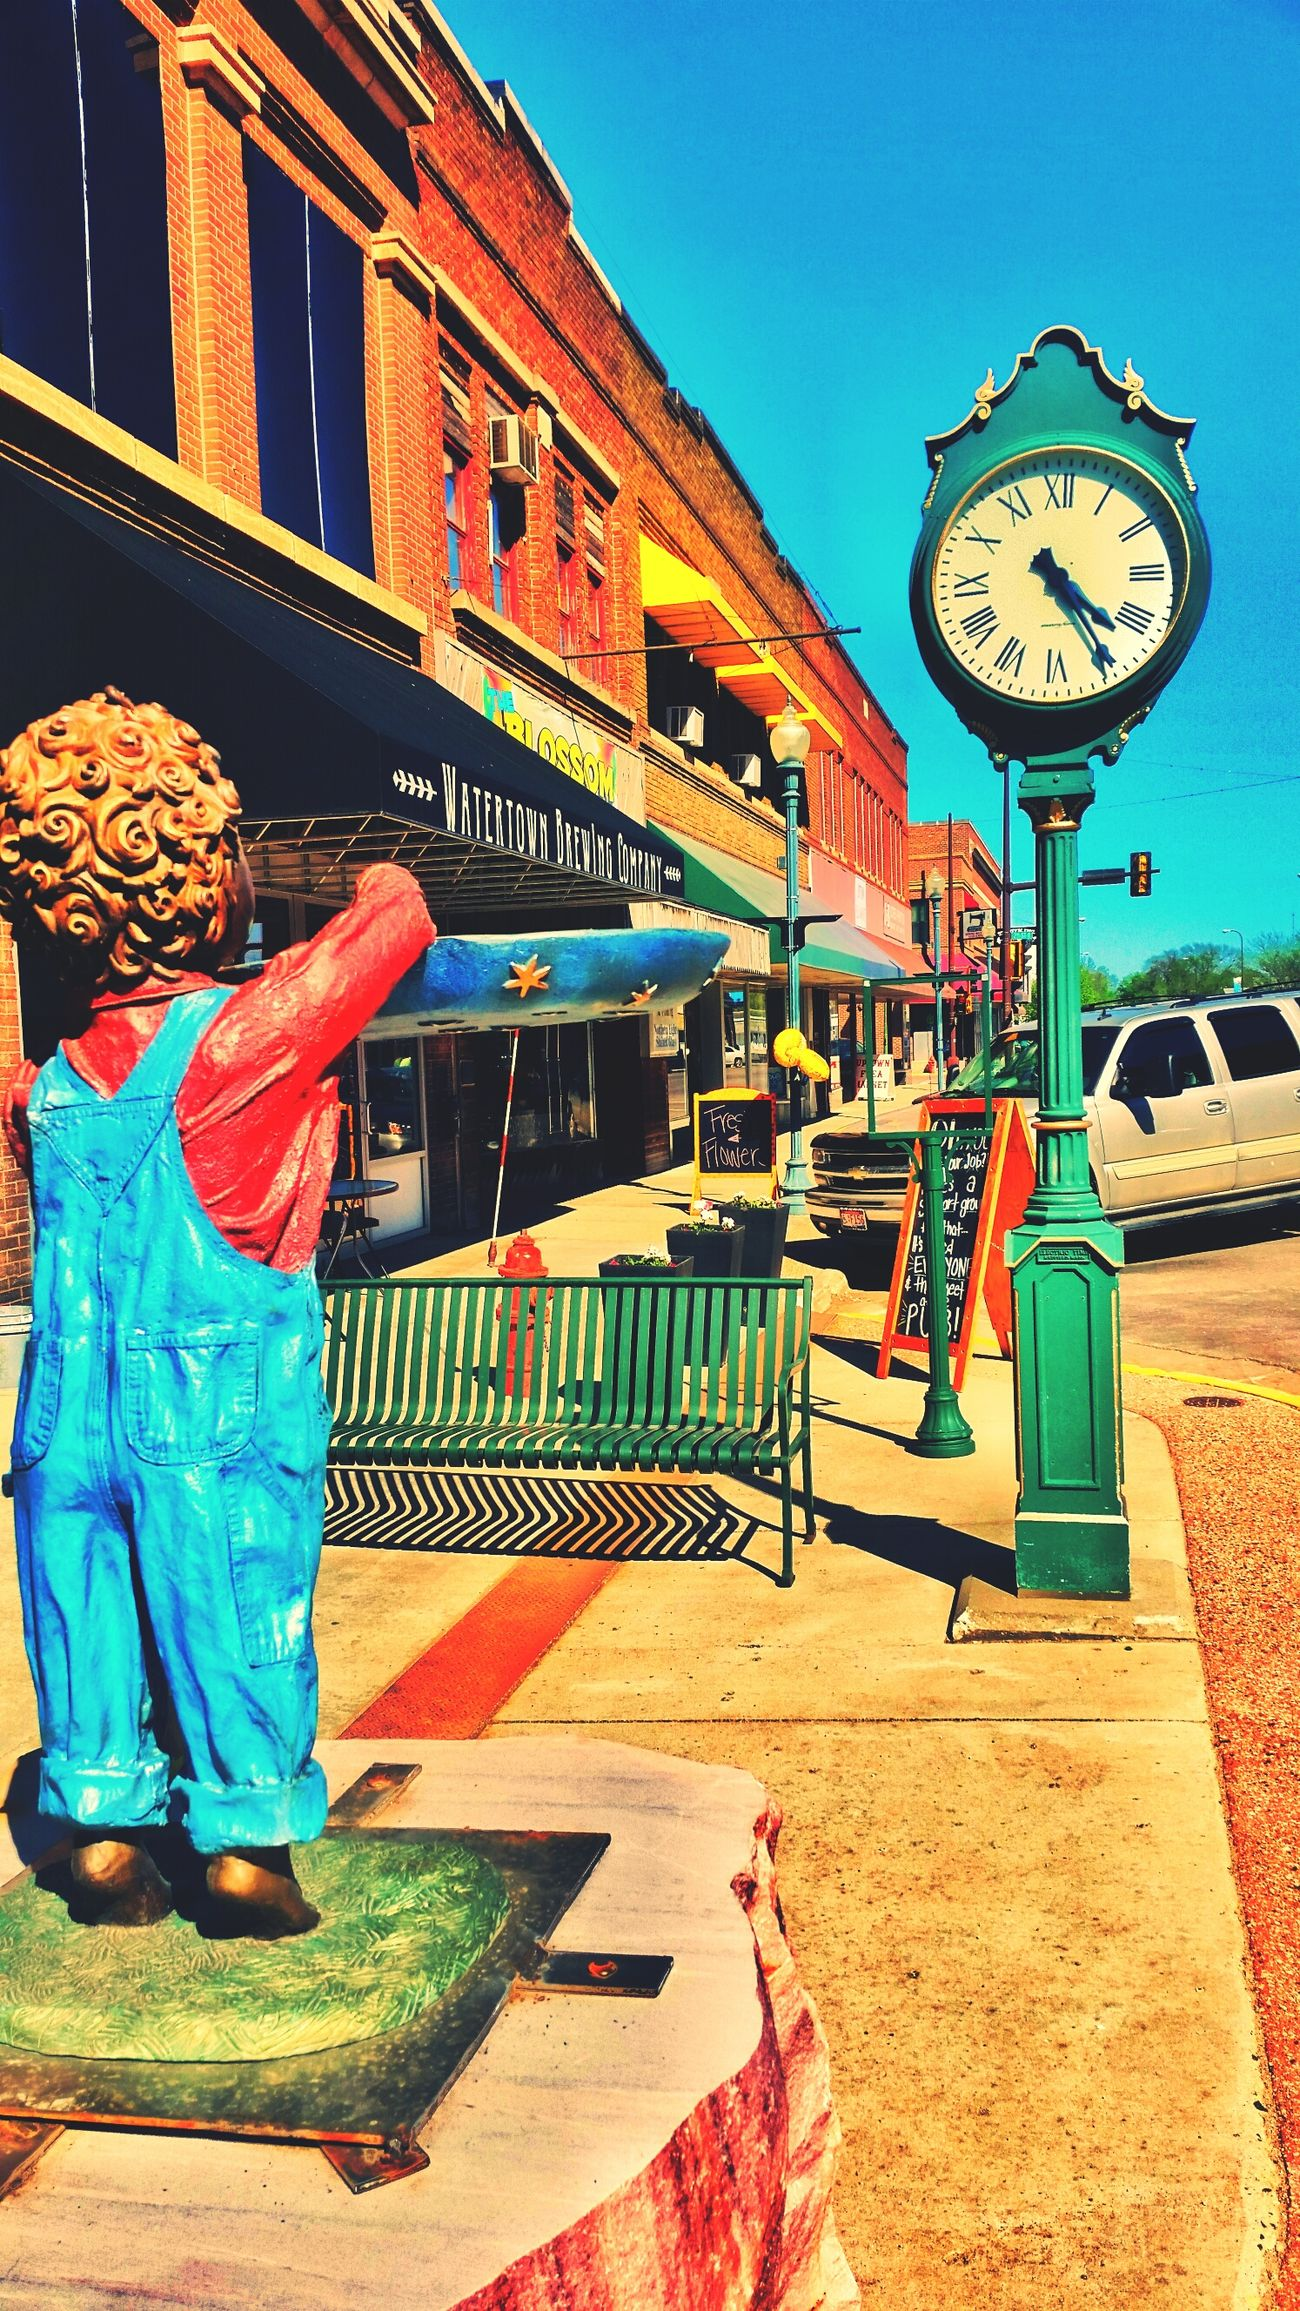 Time is Short Clock Clockwork Clock Tower Clock Structure Boy Overalls Offering Day Daylight Sunny Sunny Day Empty Street Empty Sidewalk Brewing Beer Brewing Company Baloons Signs Business Downtown Downtown District Watertown No People Building Exterior Architecture Outdoors